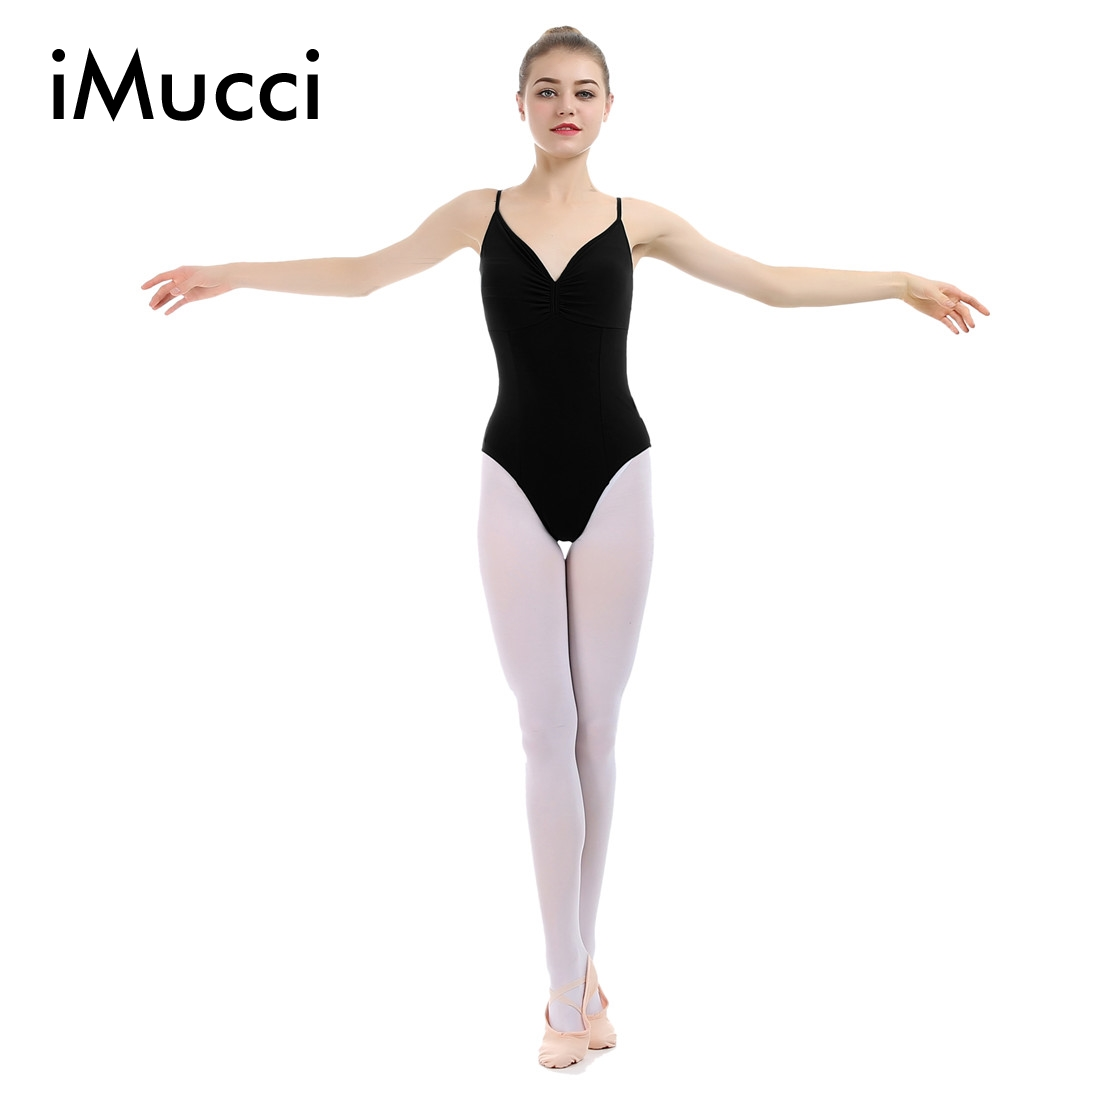 Black spandex dance unitard gymnastics and dancewear - Imucci Du Pont Lycra Cotton Vest Black Women Professional Ballet Gymnastics Leotard Unitard Ballerina Leotards Green Dancewear